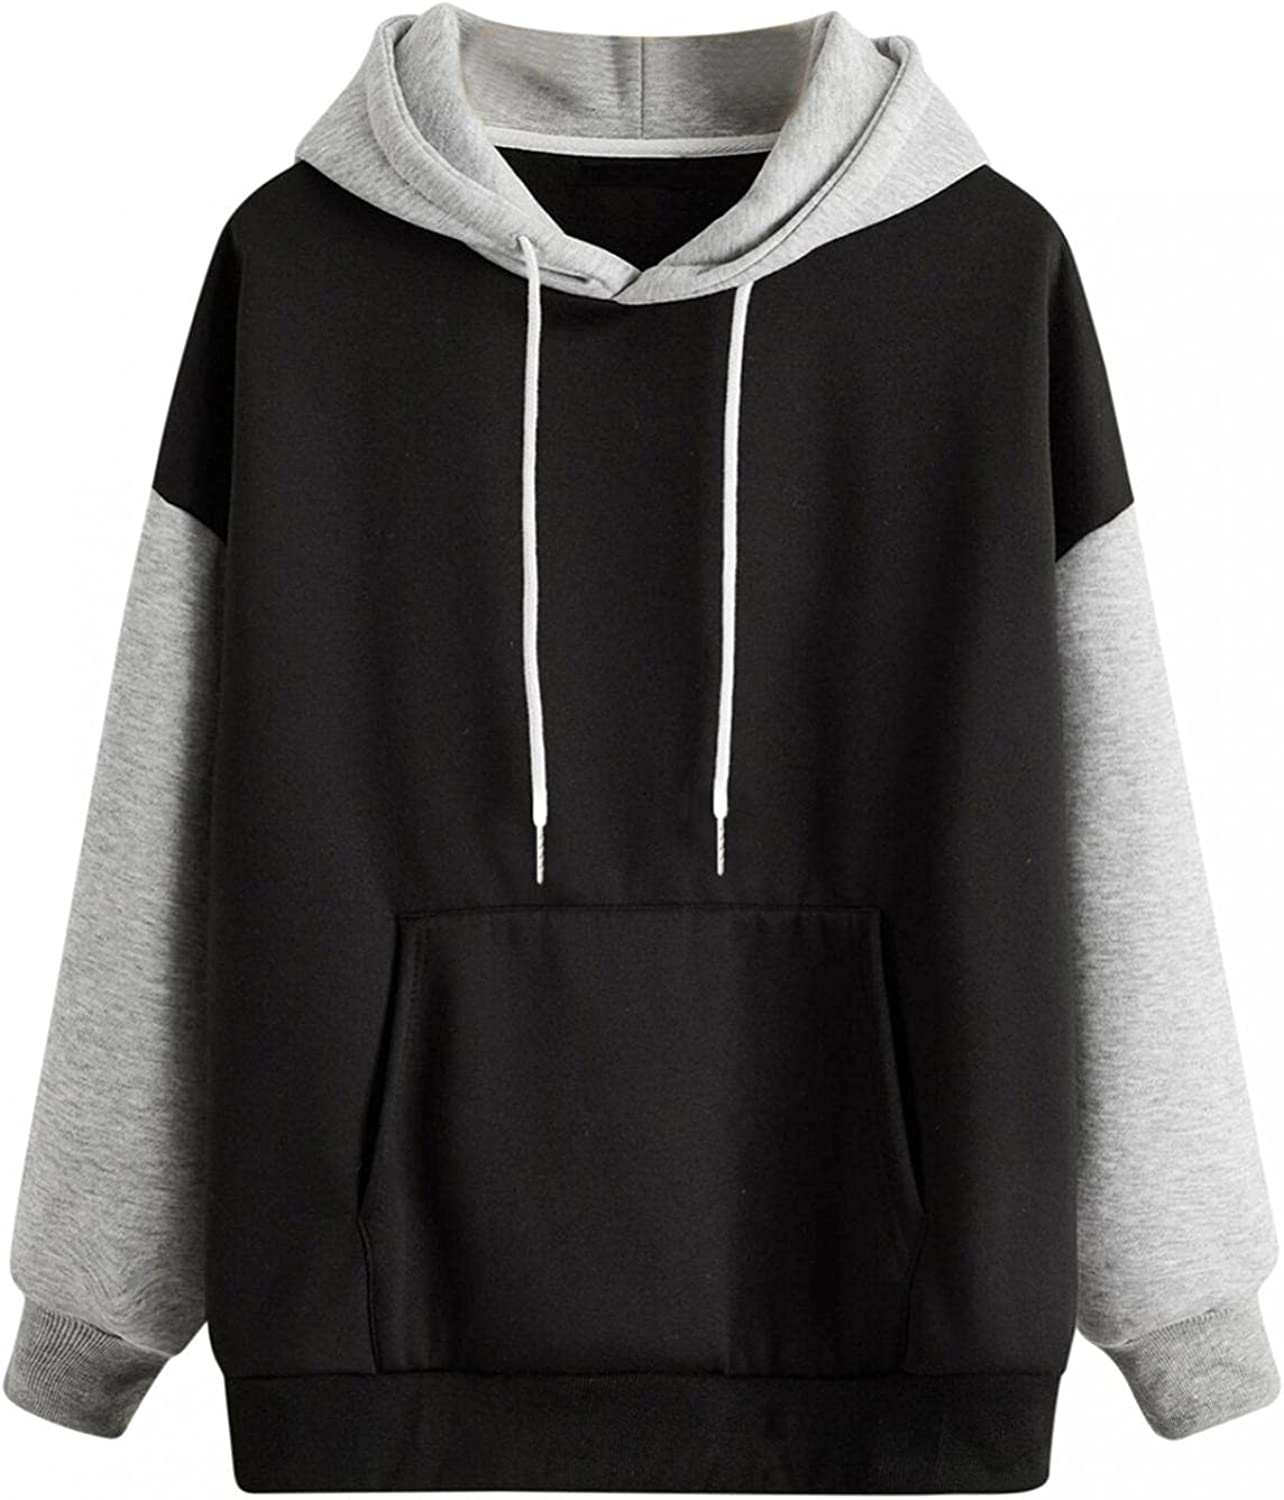 MASZONE Solid Color Hoodies for Teens Girls Sun and Moon Print Drawstring Pullover Sweatshirts Long Sleeves Casual Tops